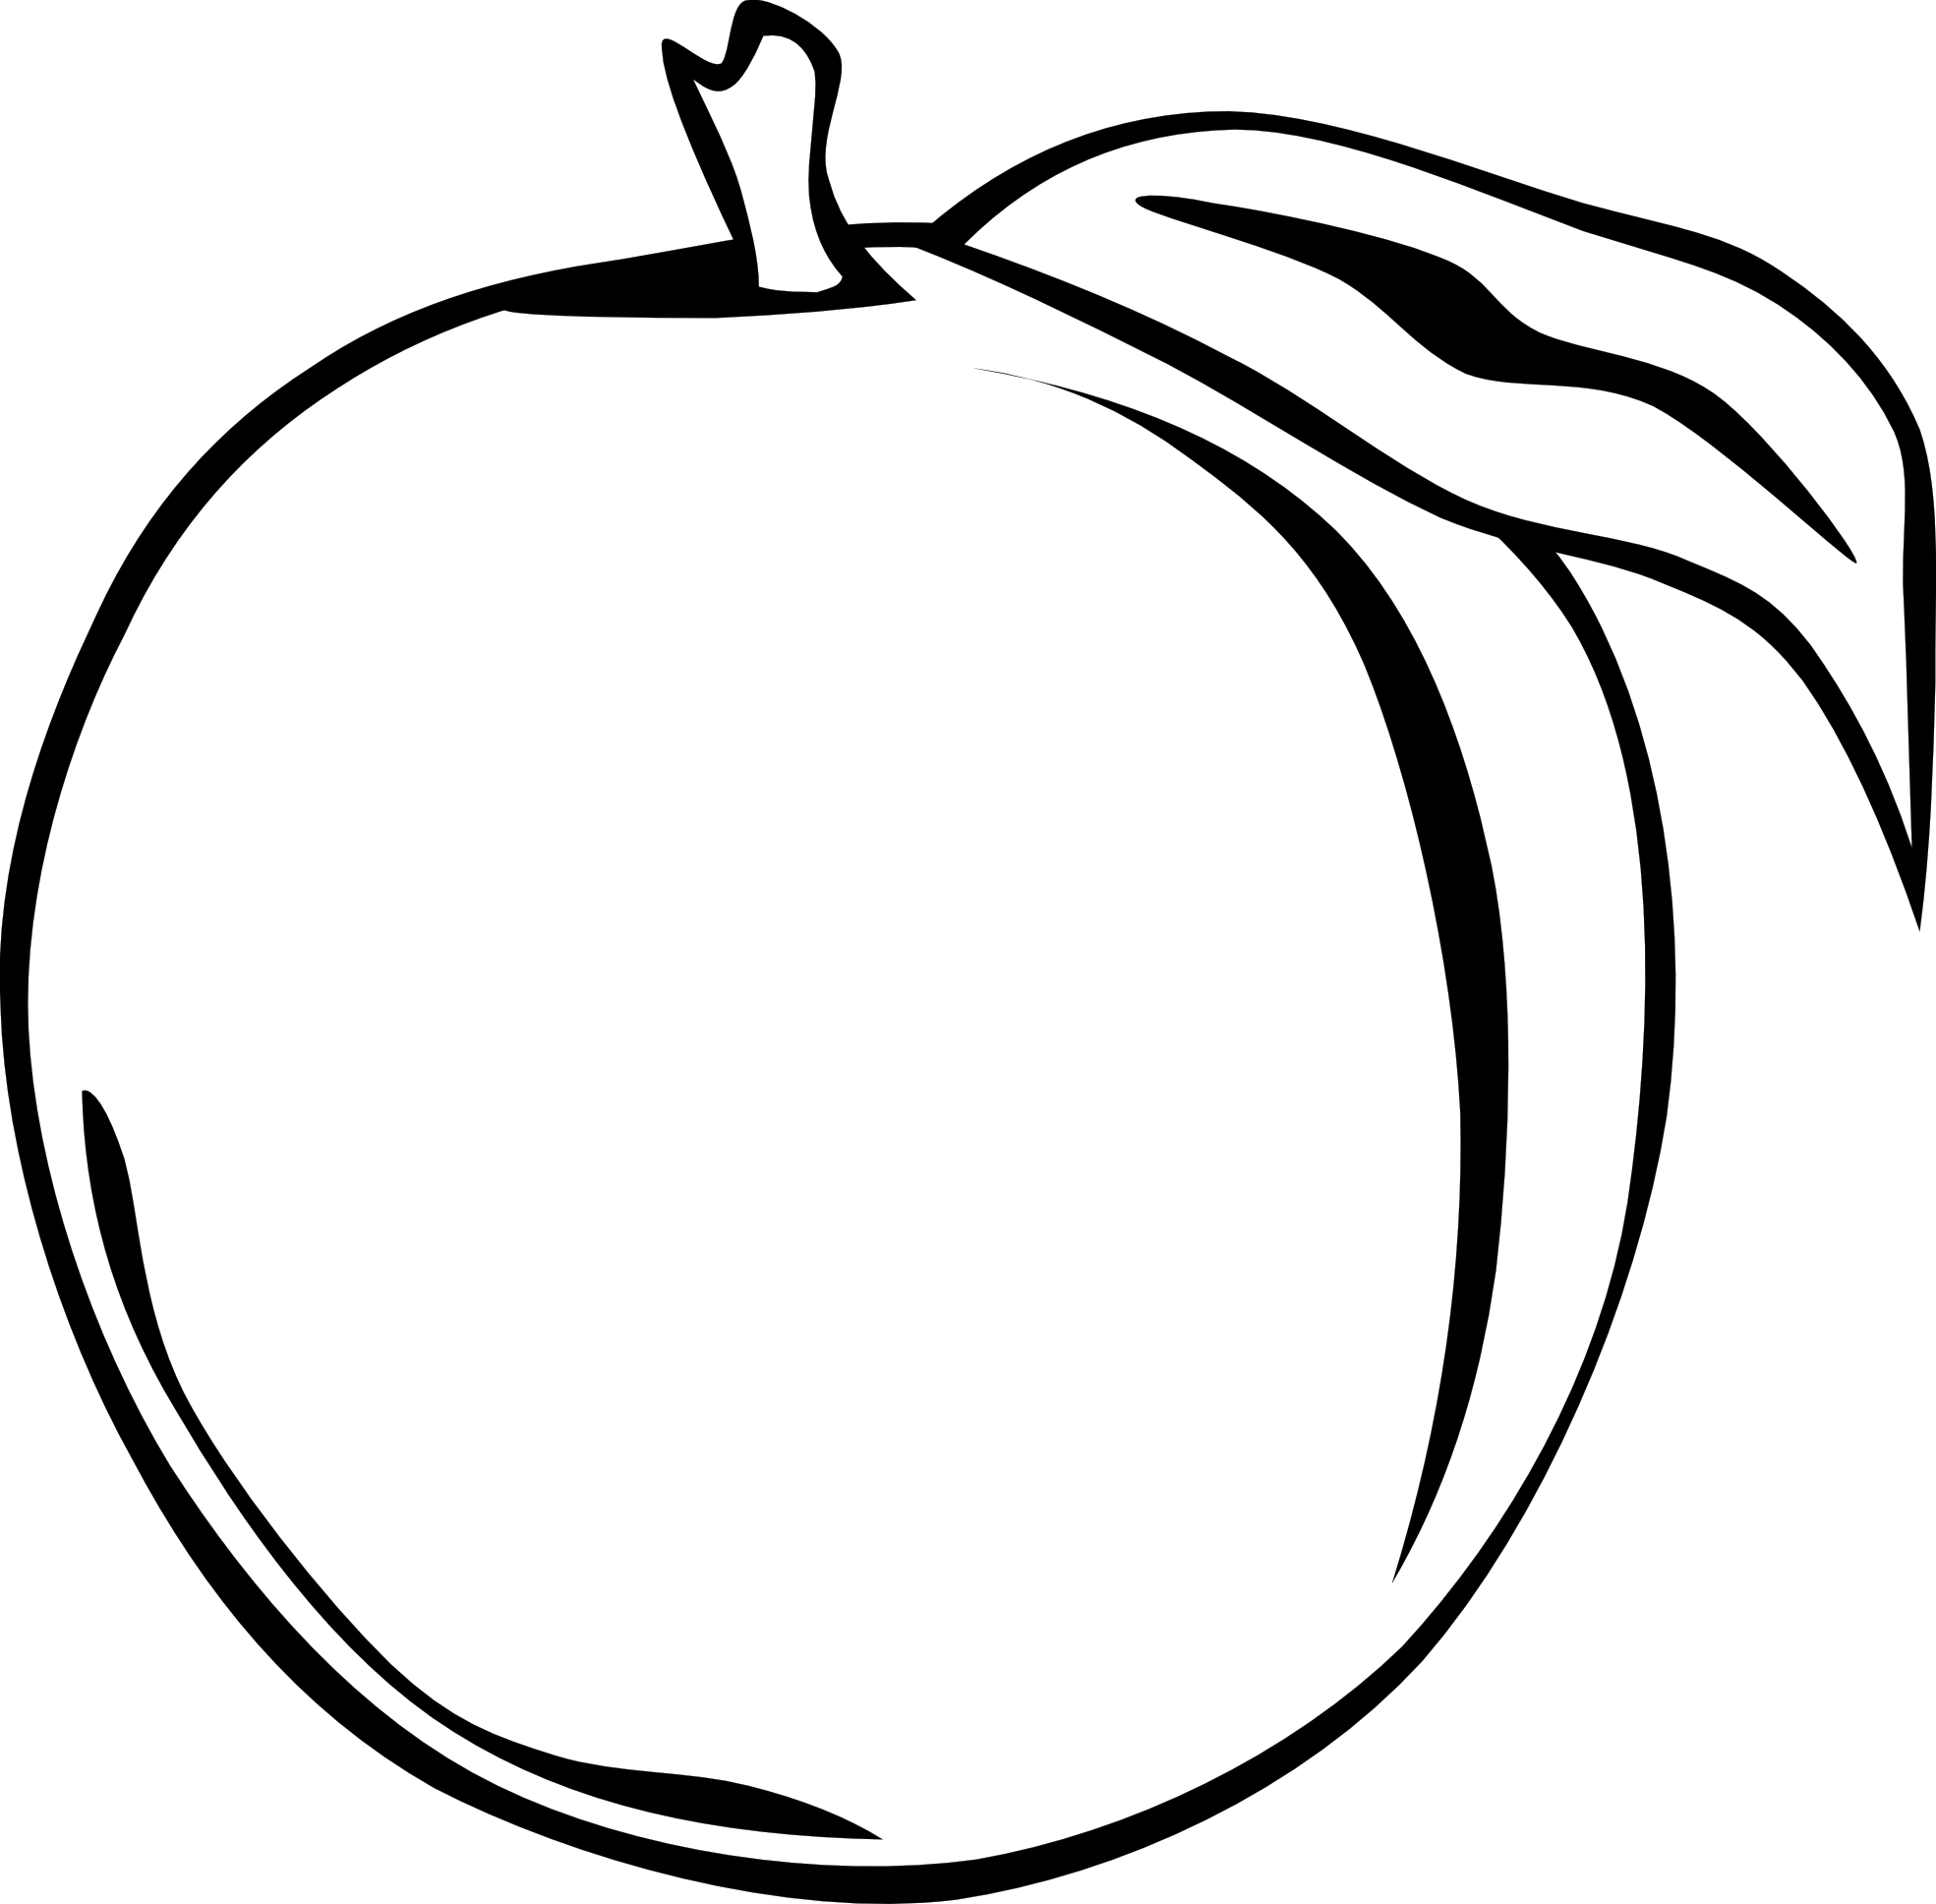 Apple seed clipart black and white banner download Watermelon Clipart Black And White | Clipart Panda - Free Clipart Images banner download